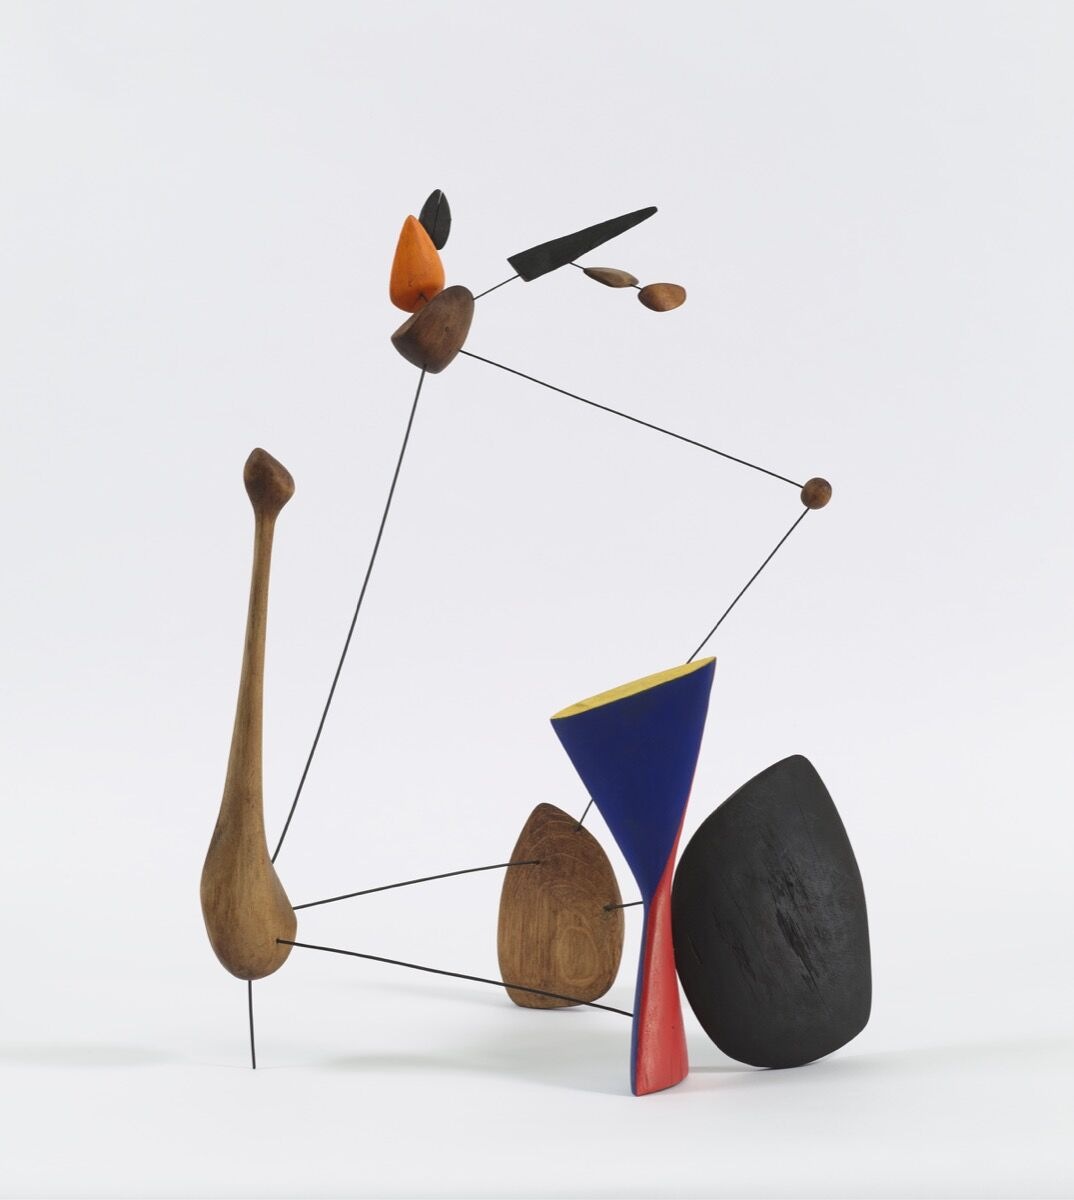 Alexander Calder, Constellation with Diabolo, 1943. Photo by Tom Powel Imaging, courtesy of Pace Gallery. © 2017 Calder Foundation, New York and Artists Rights Society (ARS), New York.